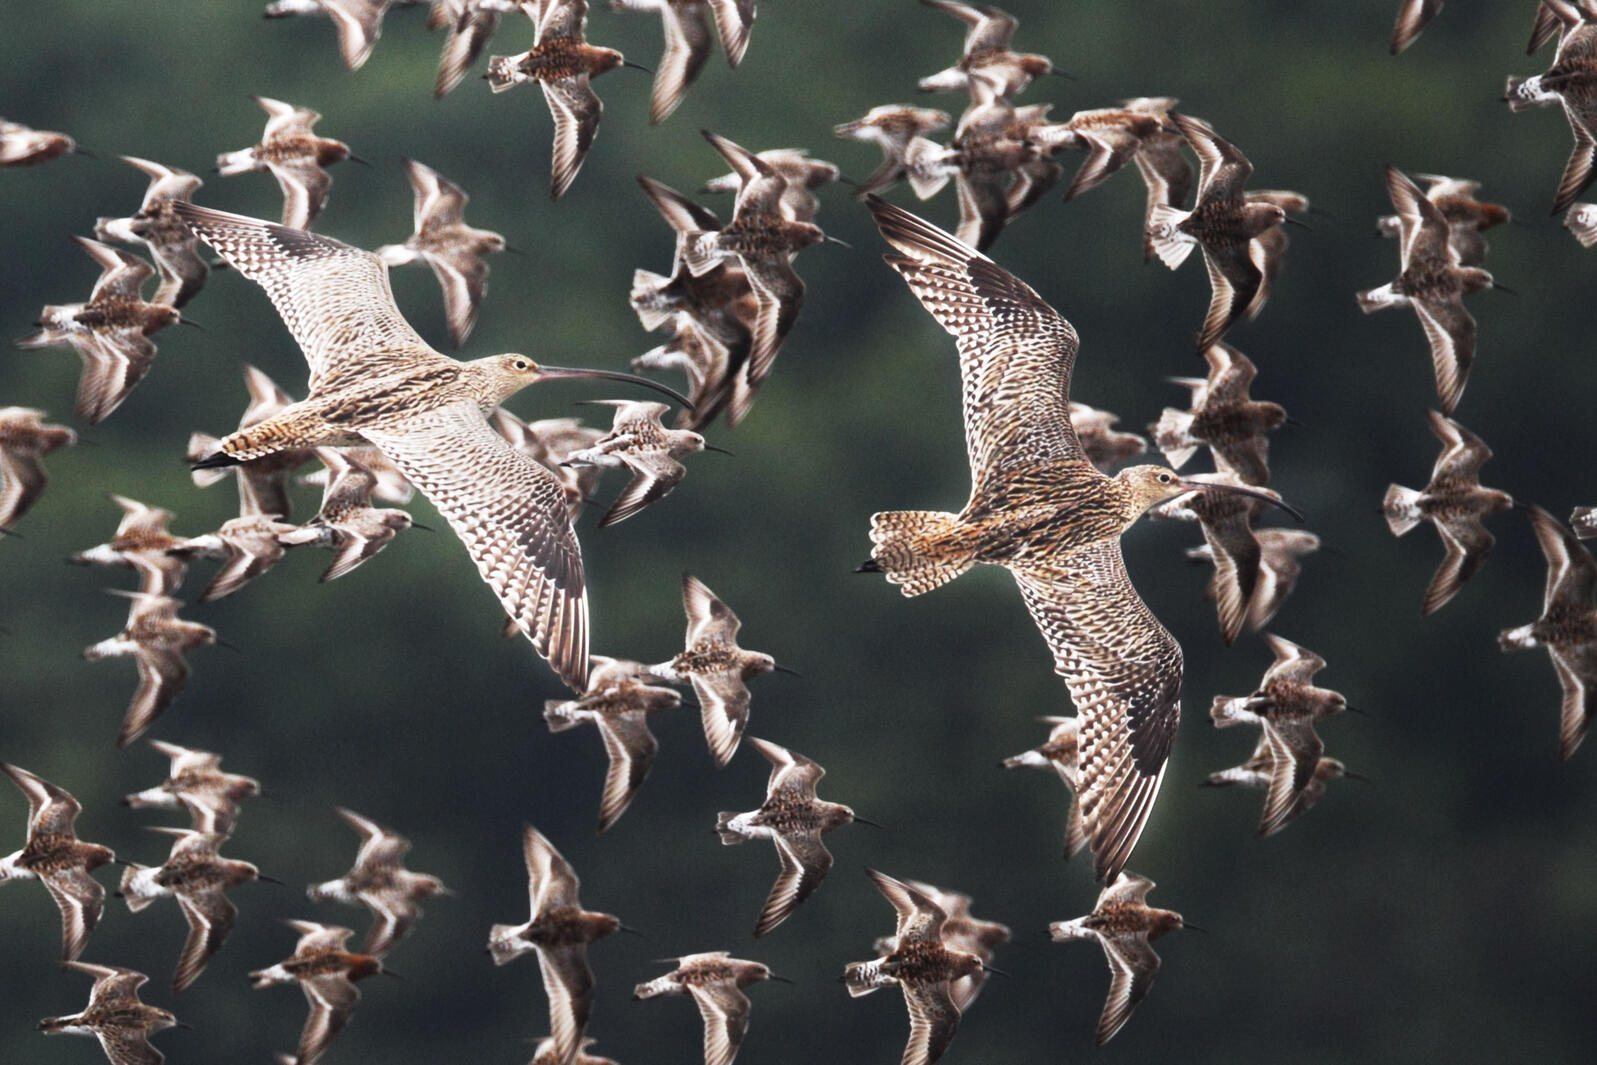 Far Eastern Curlews are just one of many migrating species that don't have adequate protections. FLPA/Alamy